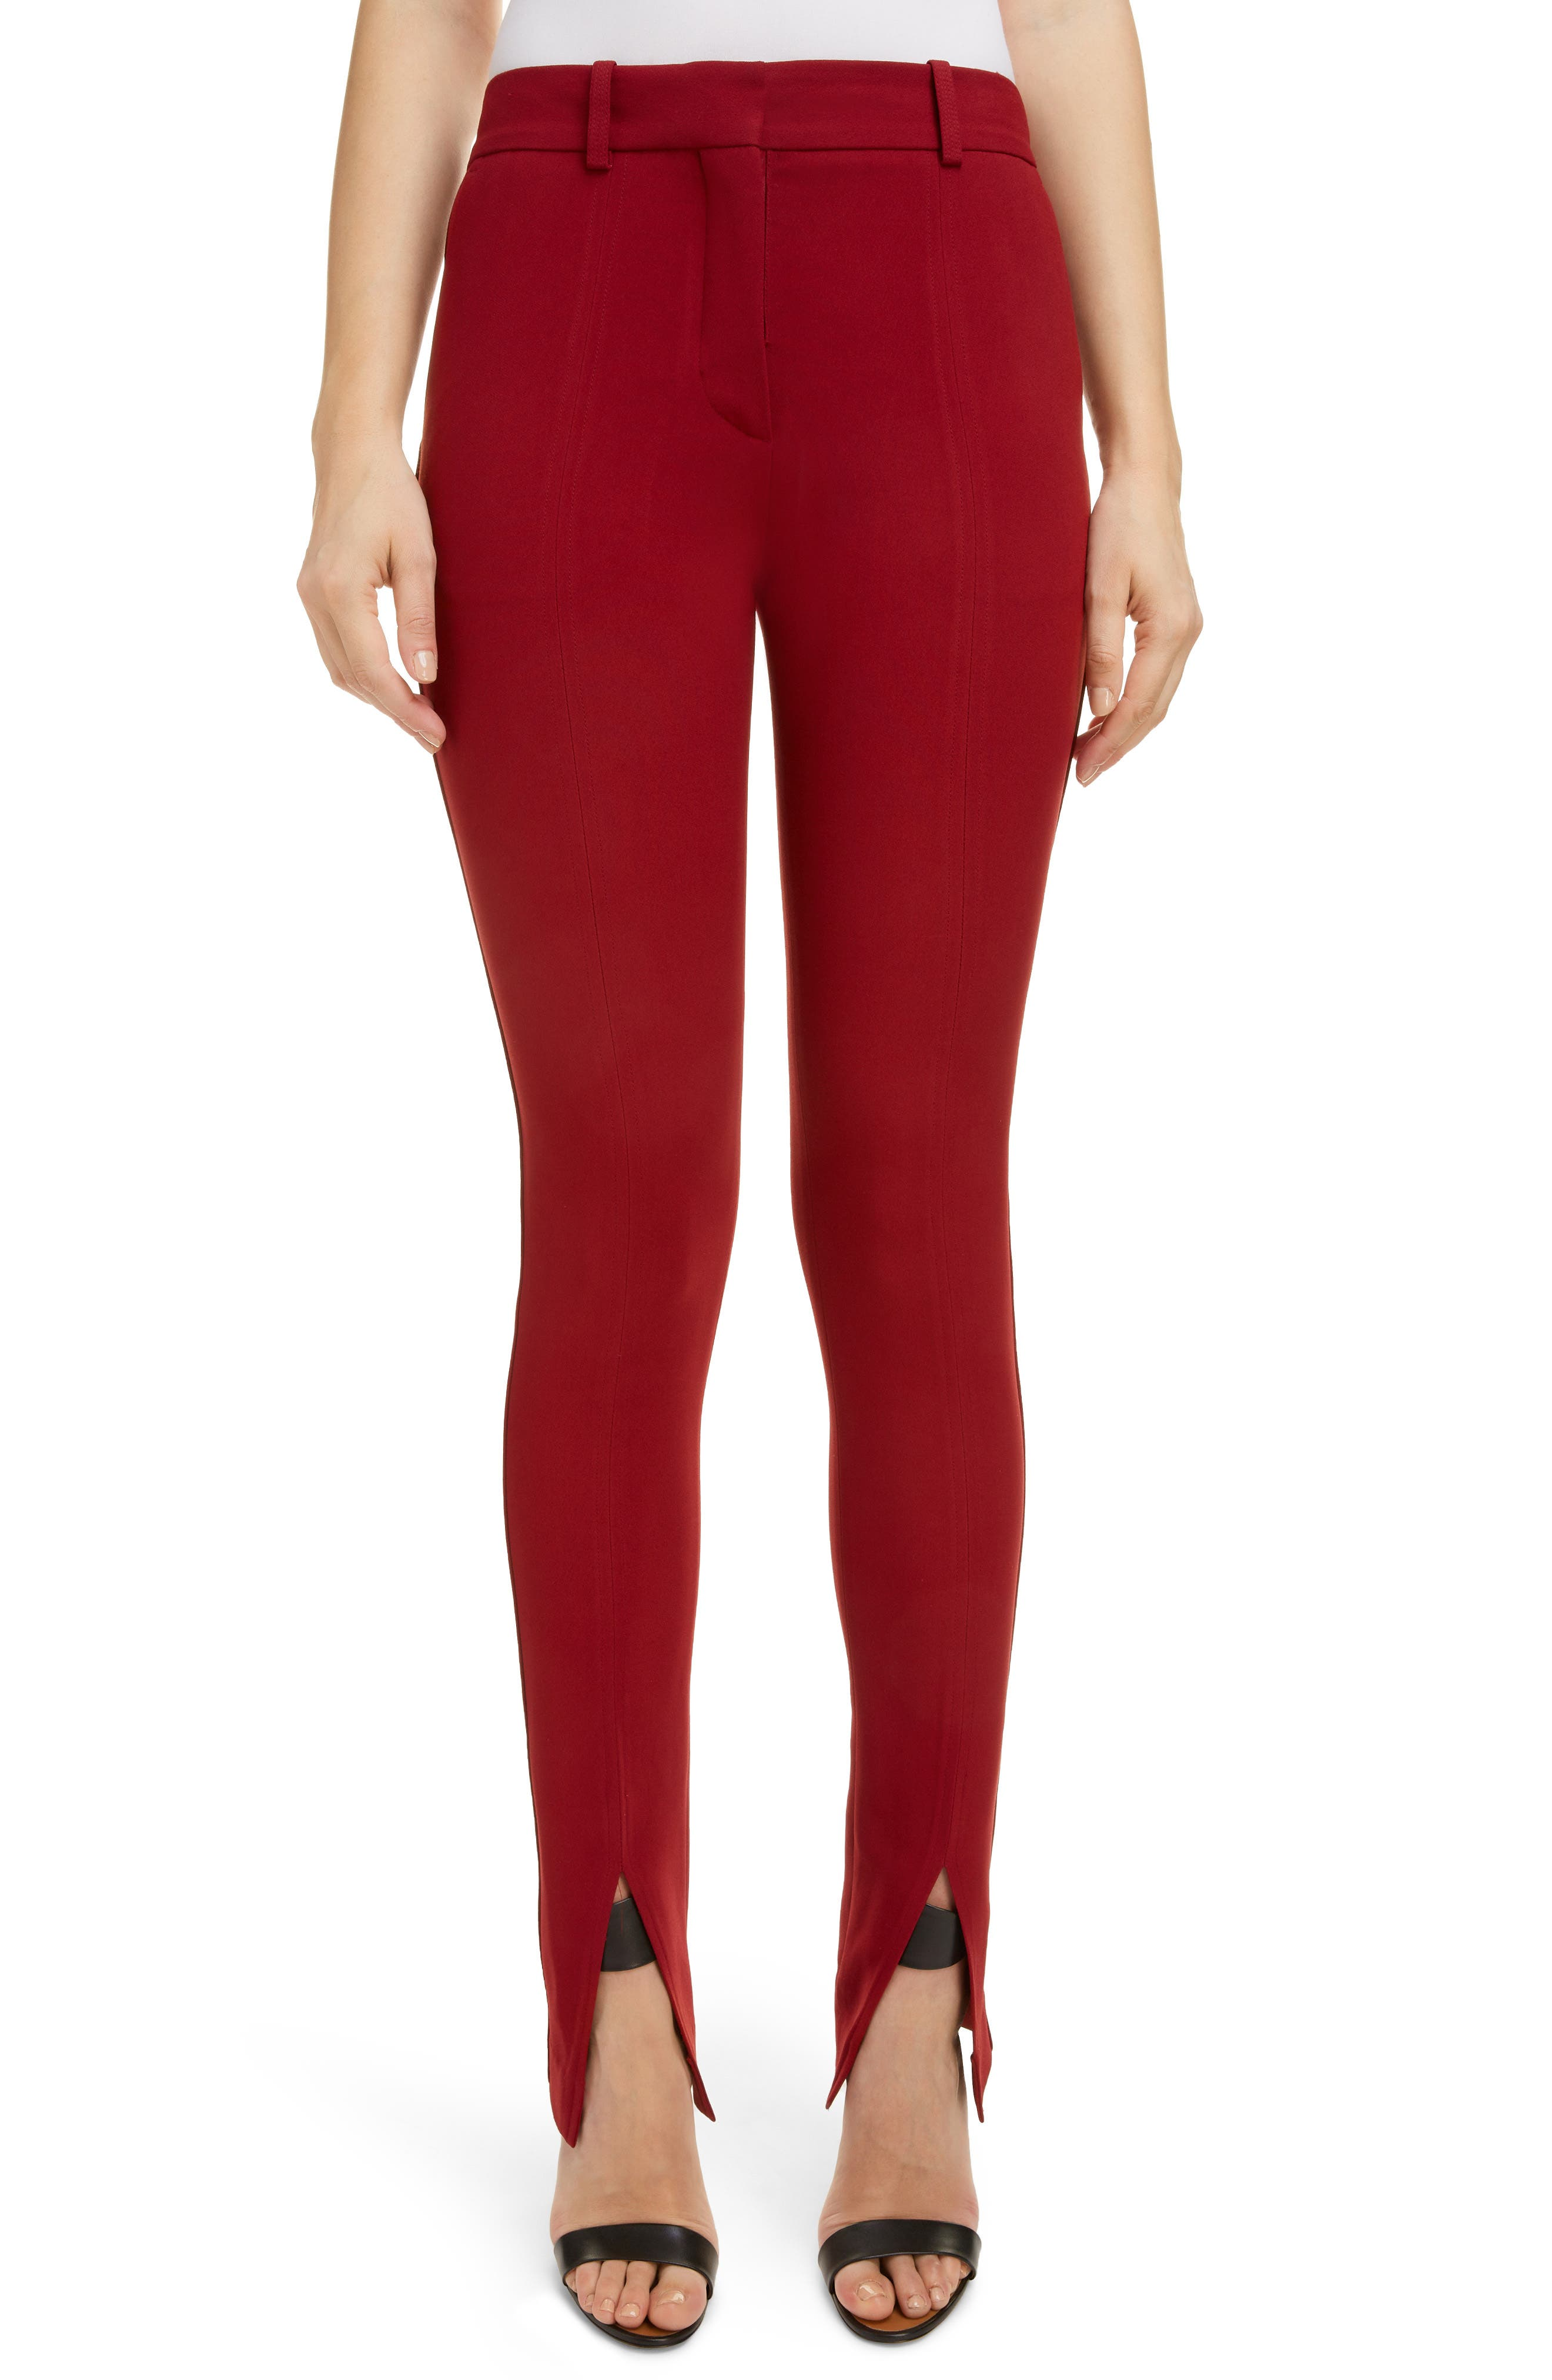 VICTORIA BECKHAM, Front Split Skinny Pants, Main thumbnail 1, color, BURGUNDY